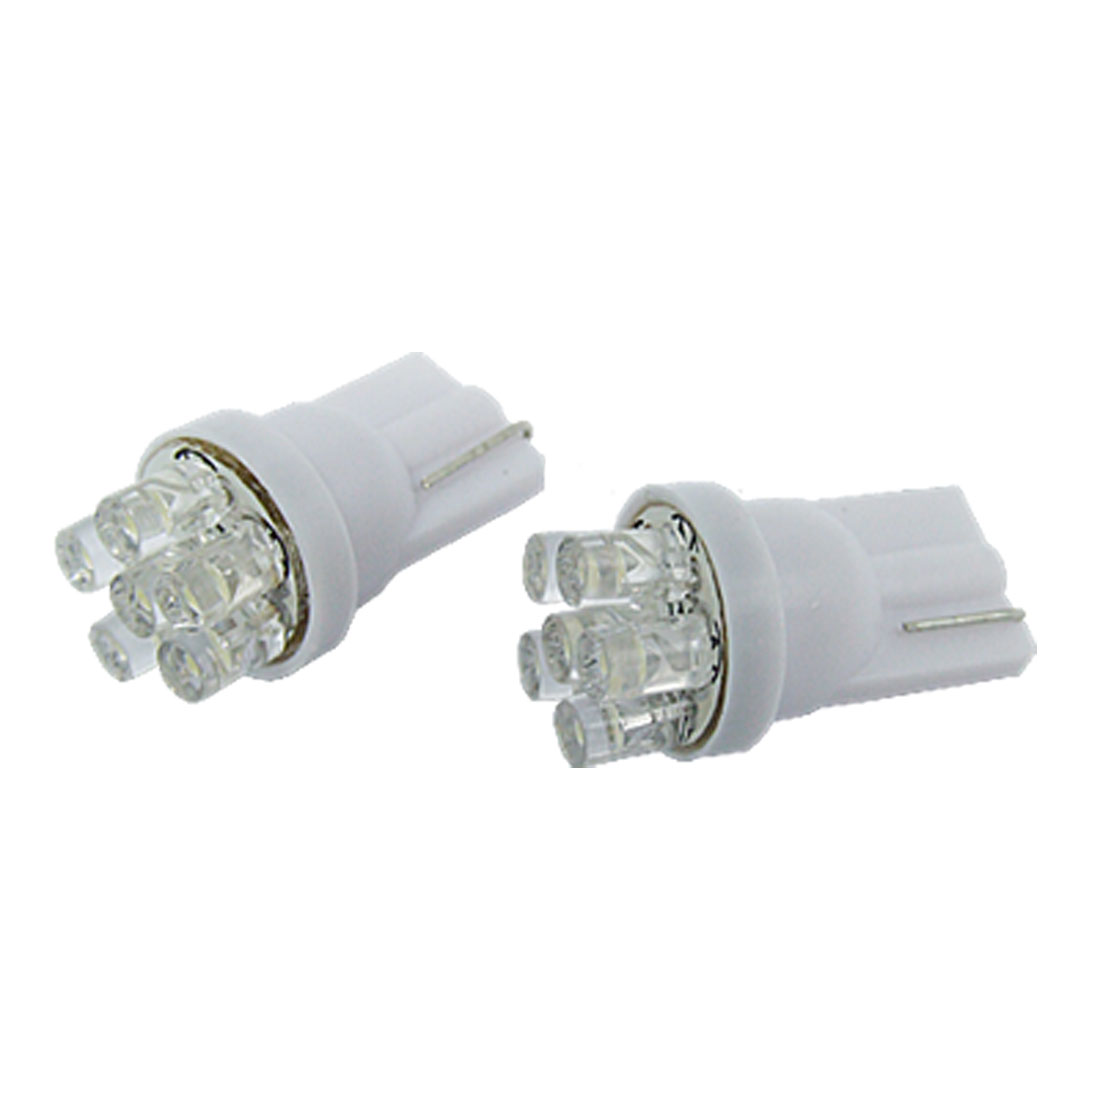 2x T10 Bulbs Side Light 194 168 W5W White 6 LED Wedge NEW